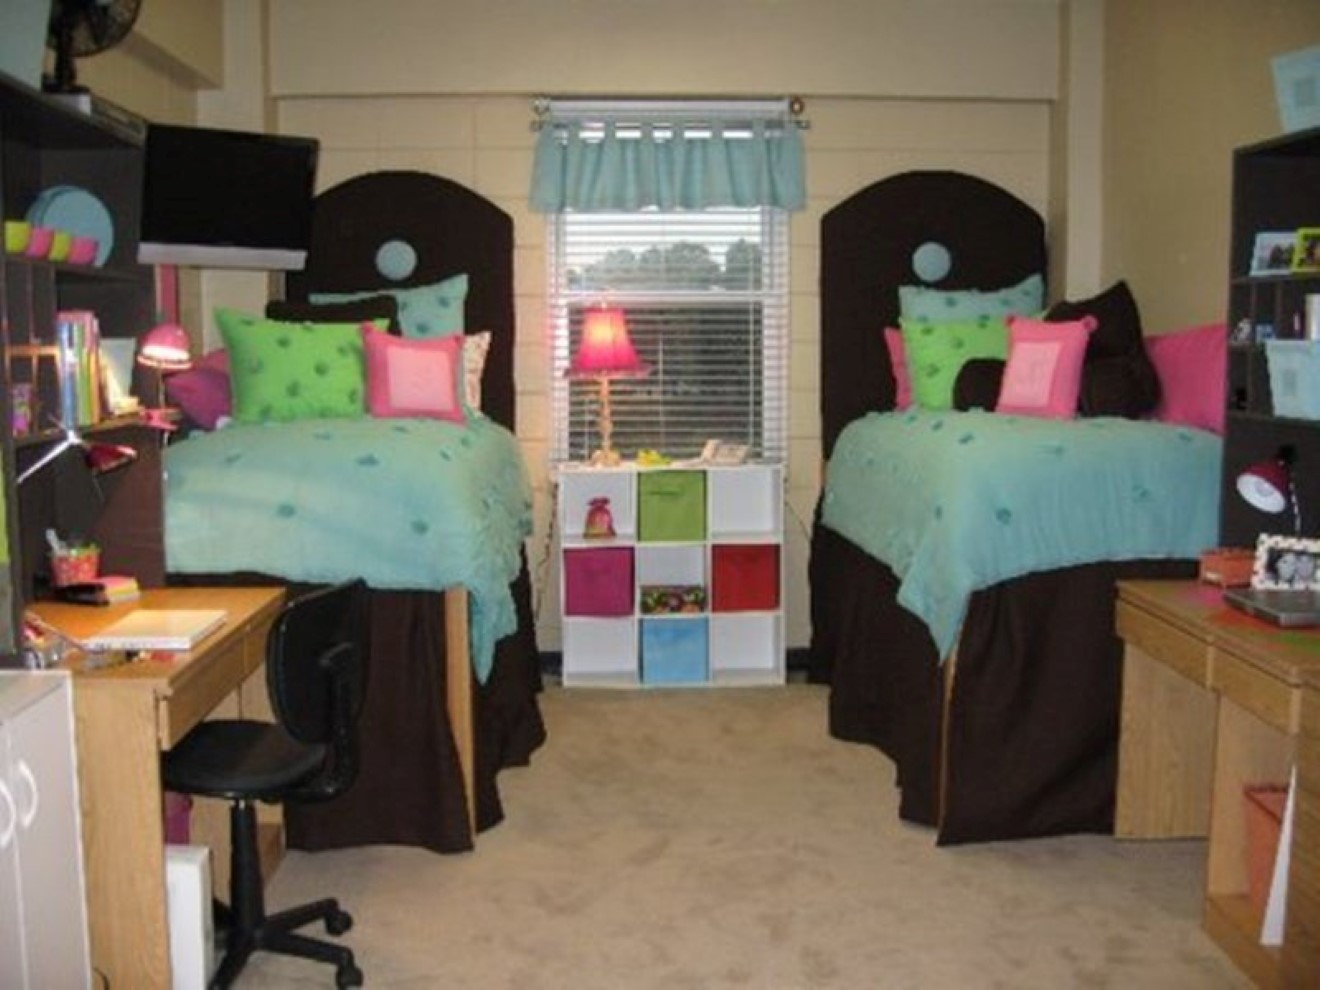 College dorm room ideas of distributing the nuance - College room decor ideas ...